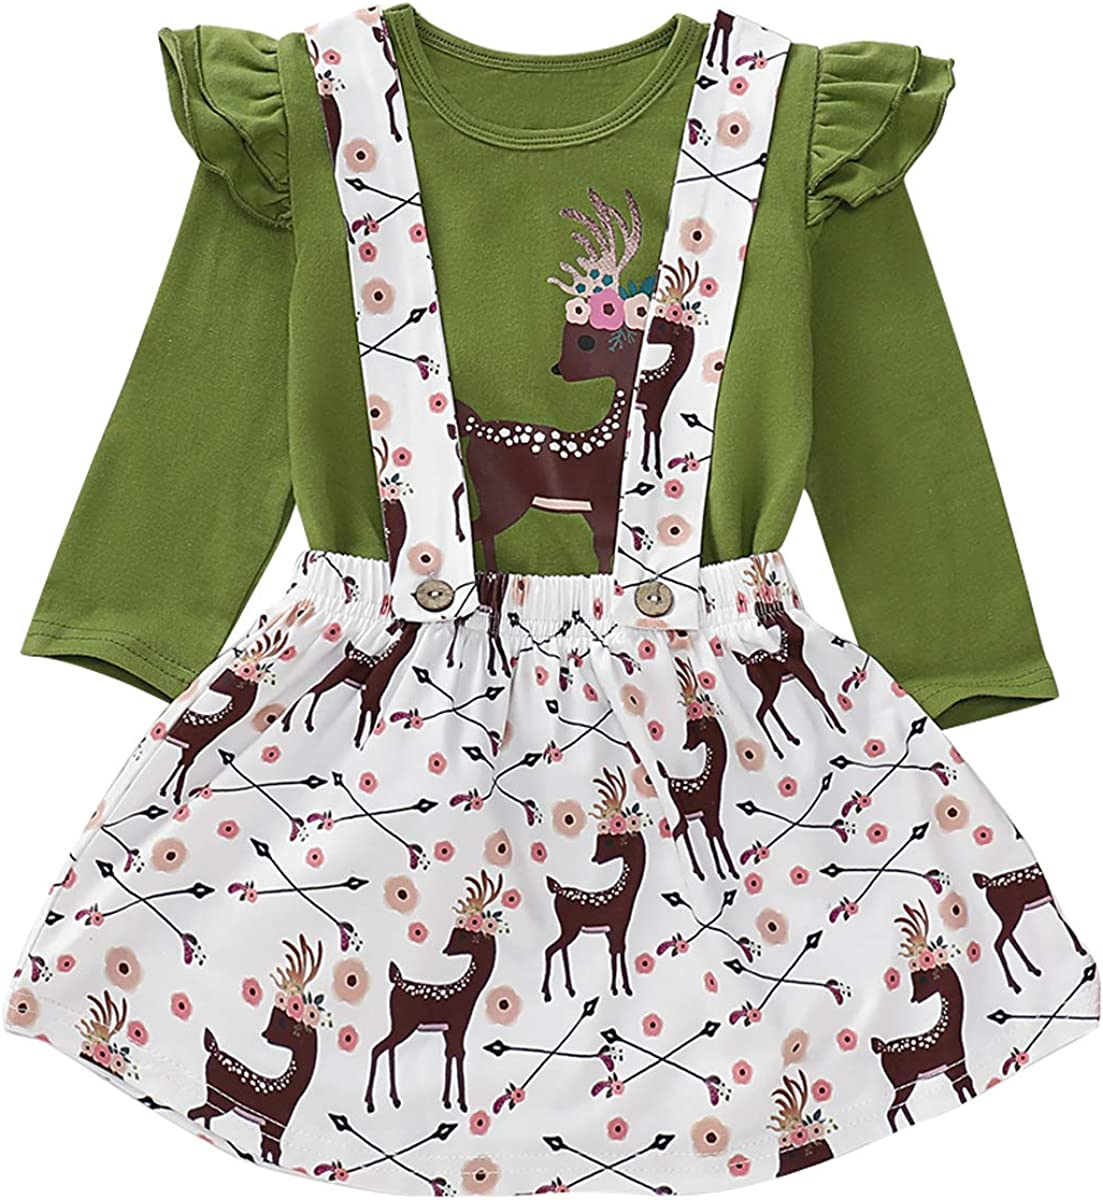 Toddler Girls Fall Suspender Skirt Pumpkin or Animal Print Outfit Cute Boutique Clothes 2 Piece Holiday Dress Up Set